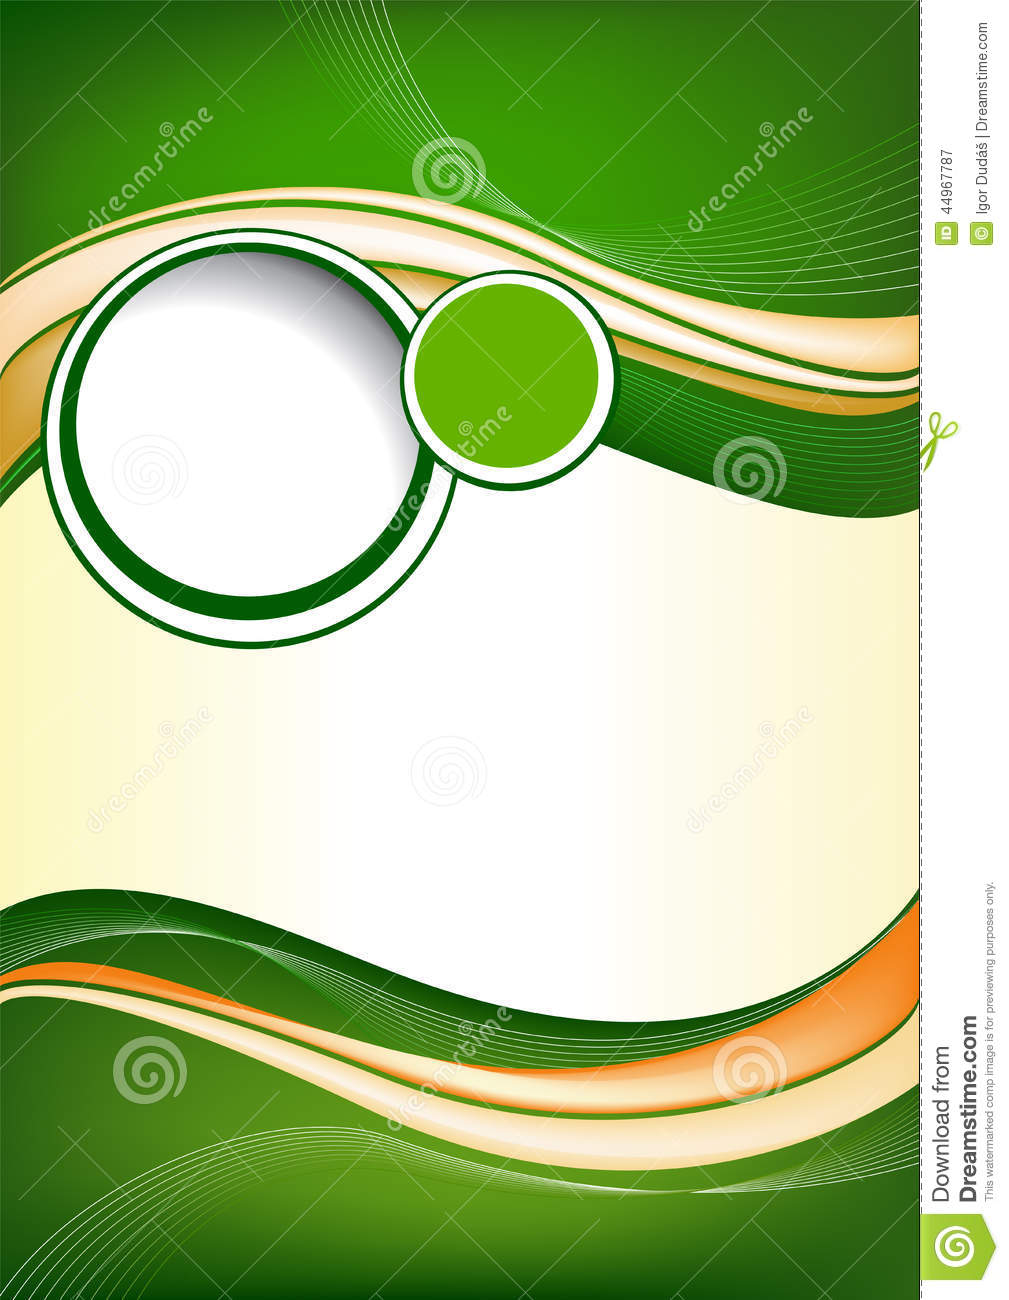 Abstract green background design stock vector image for Background for brochure design